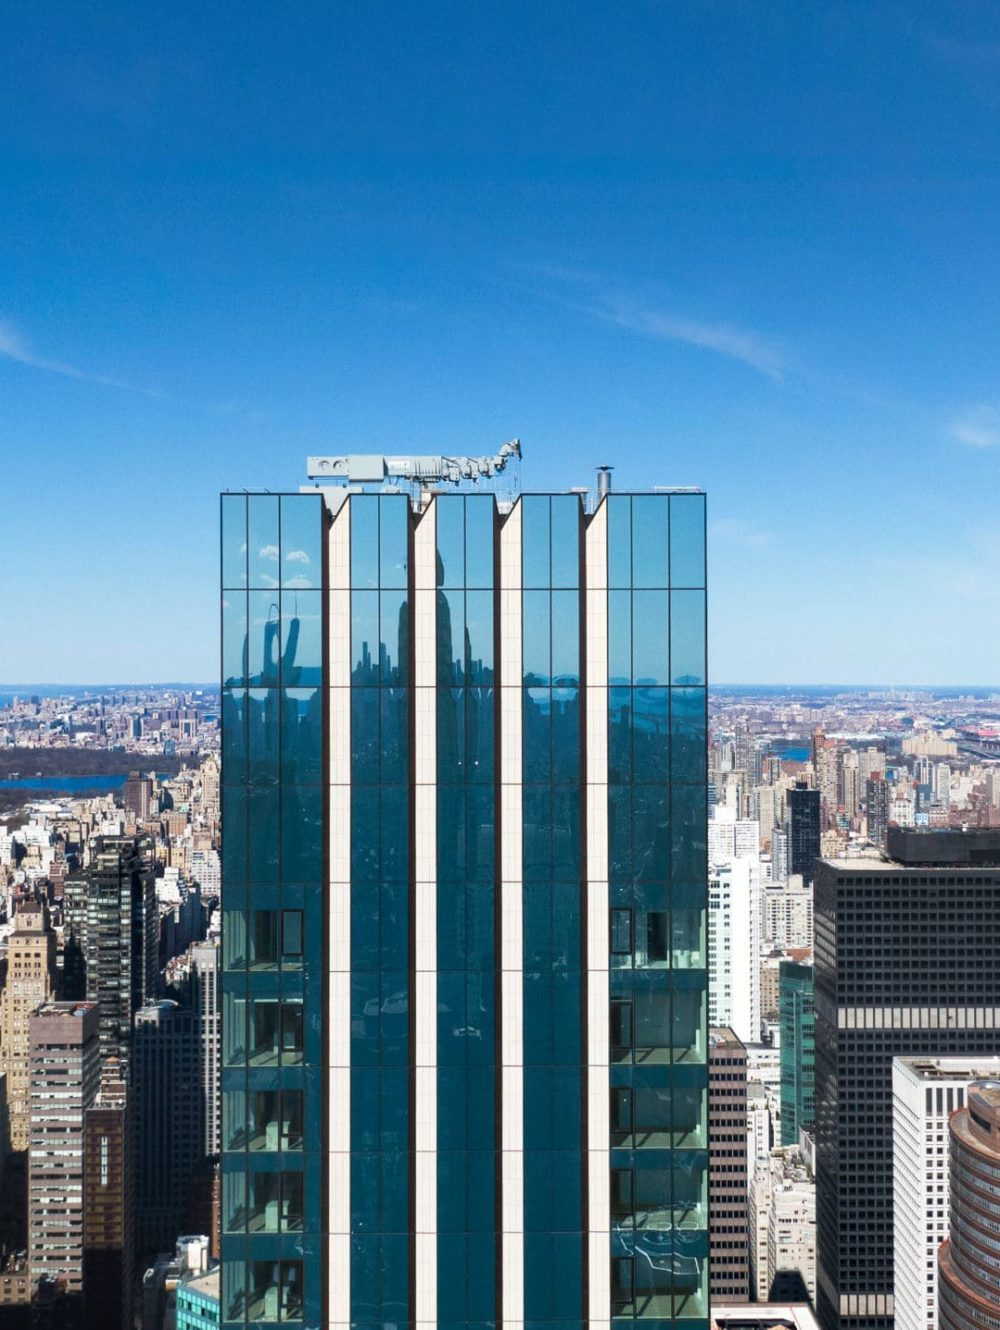 Birdseye view of The Centrale condos in New York. Tower with glass facade in downtown with buildings and blue sky behind it.